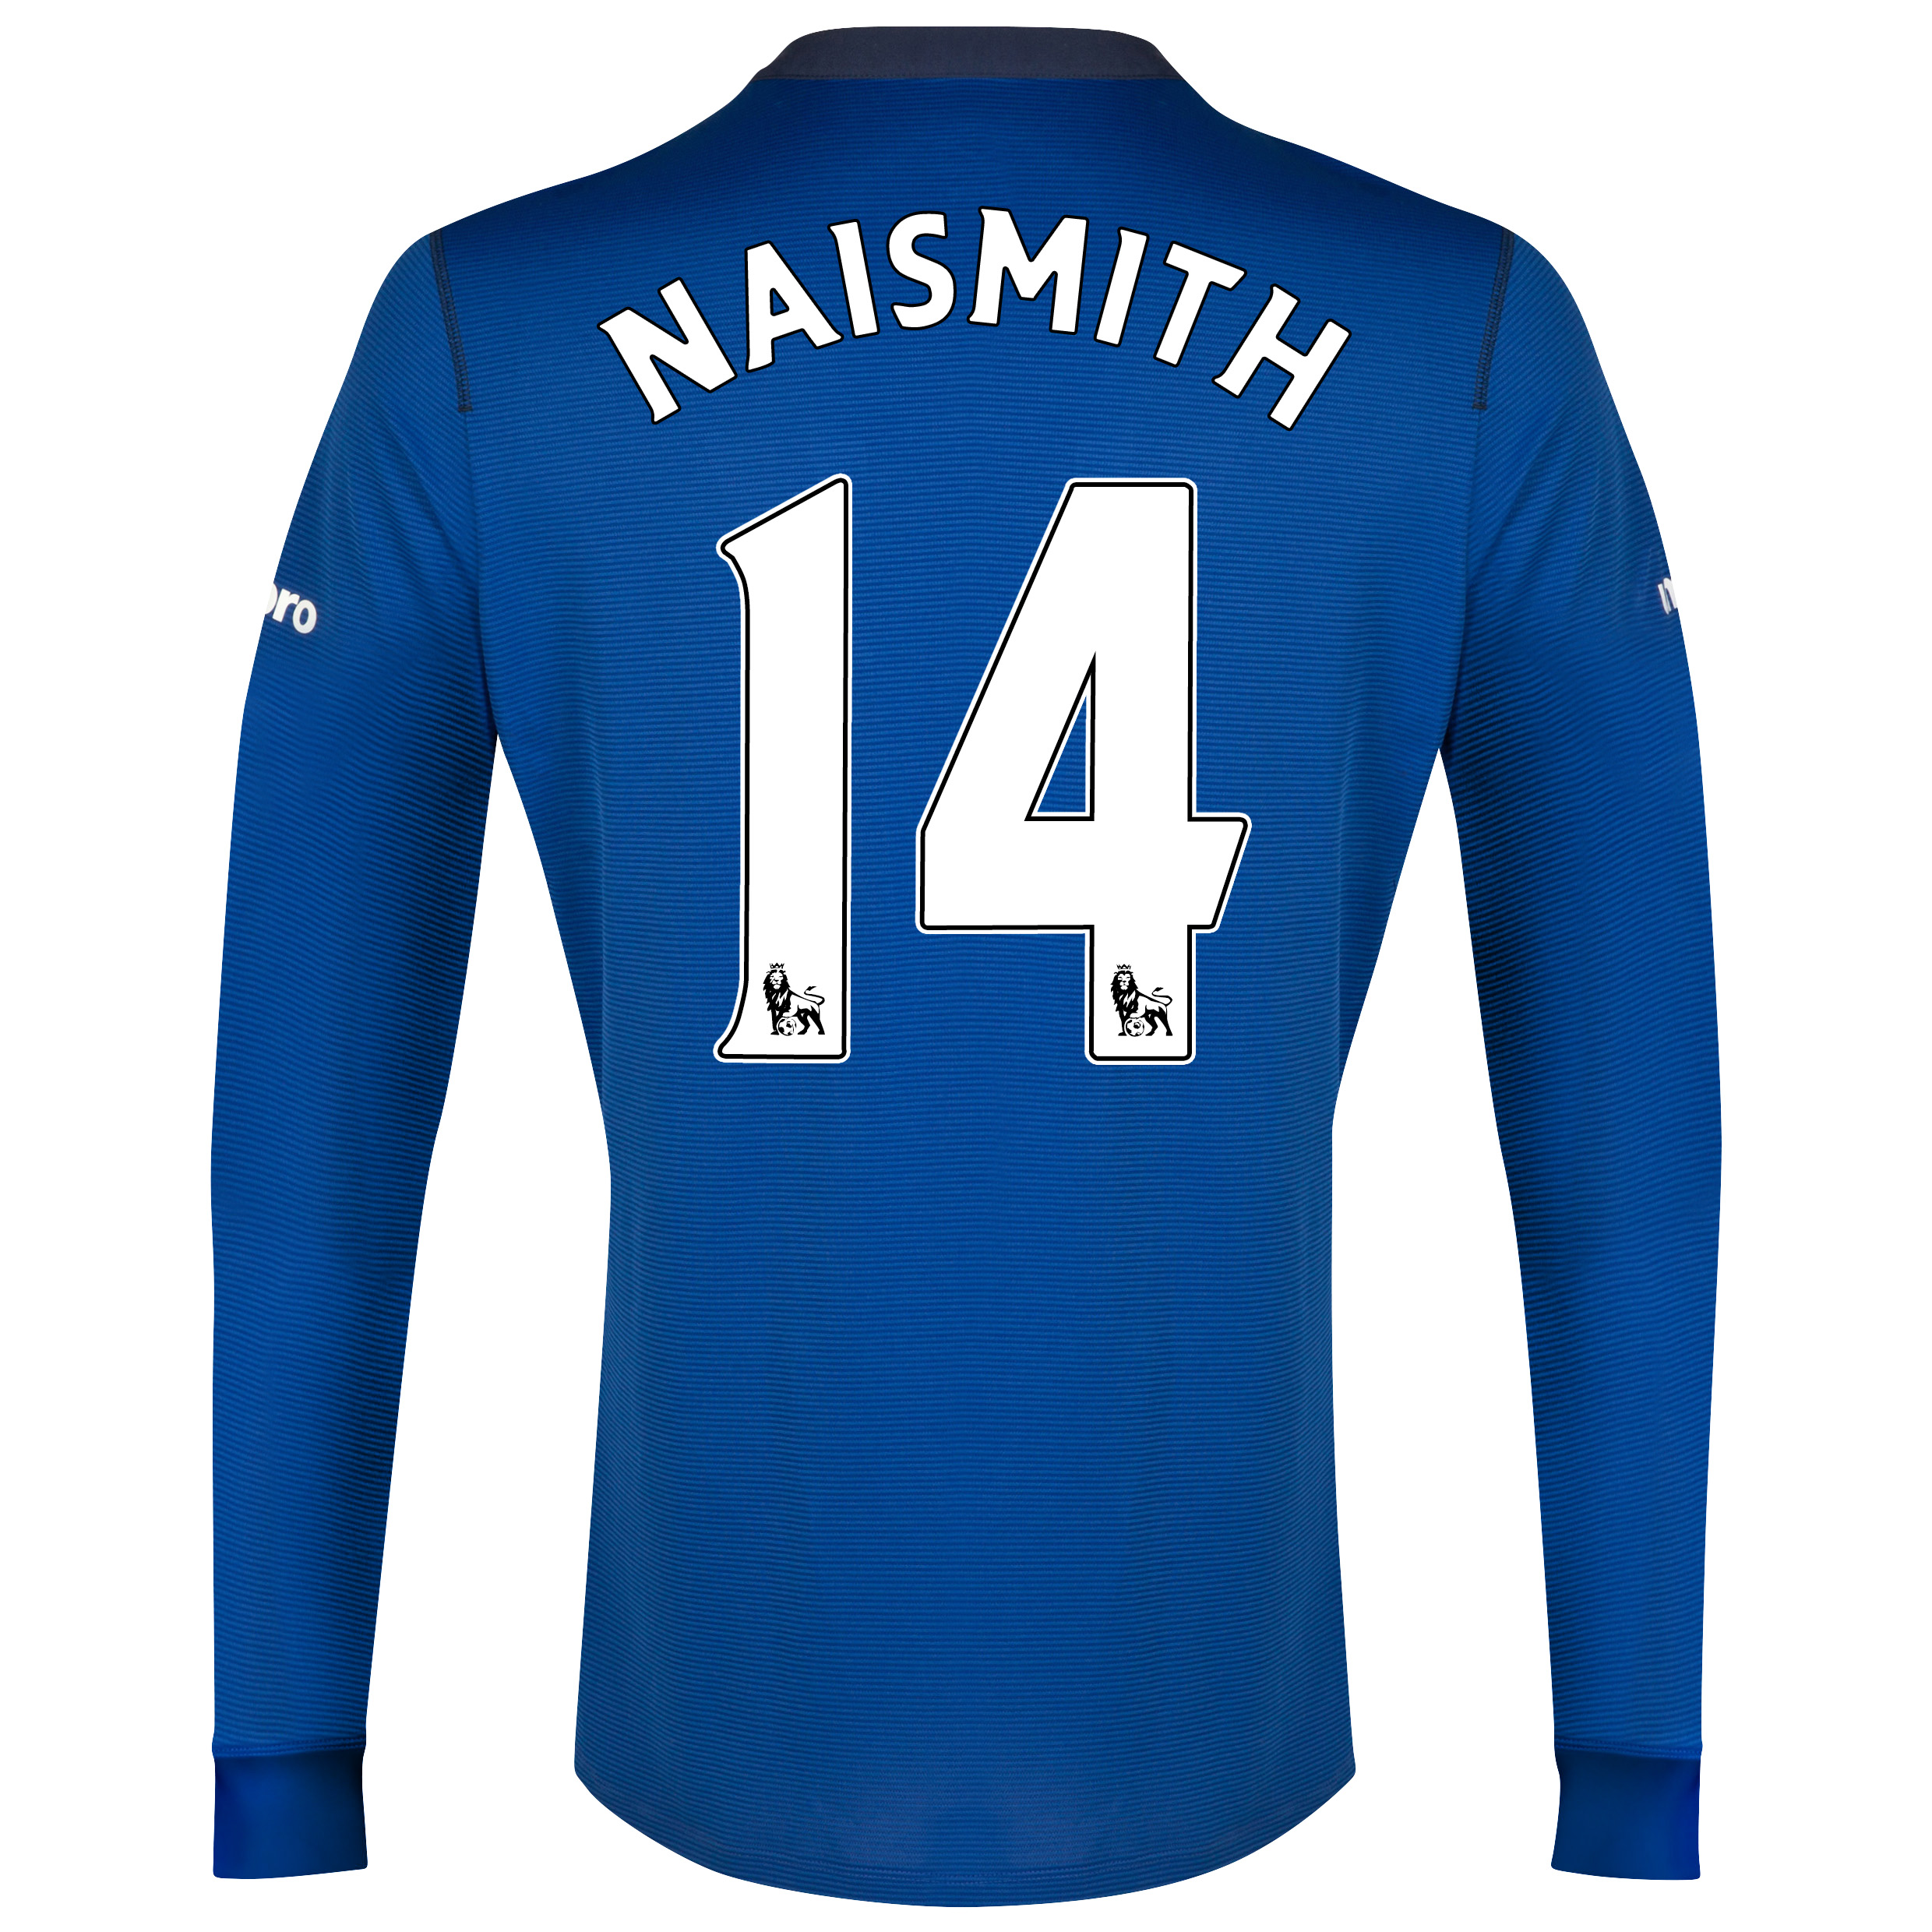 Everton LS Home Shirt 2014/15 with Naismith 14 printing